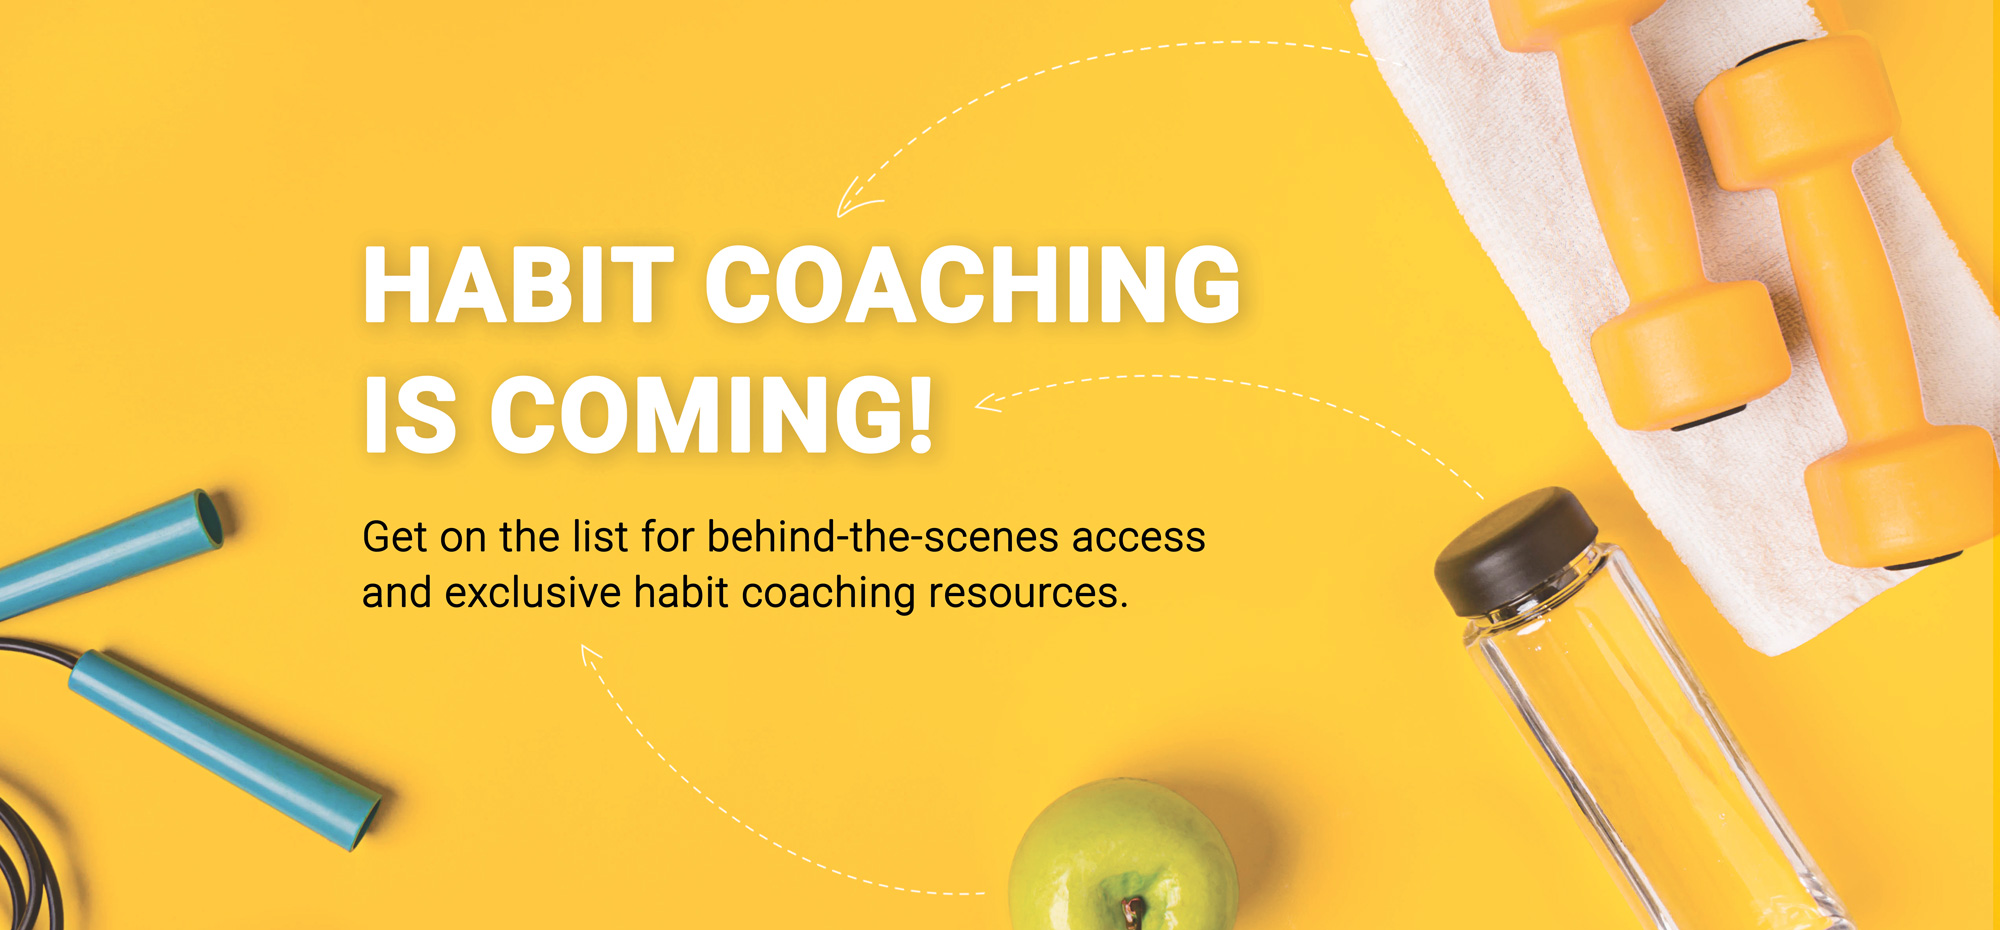 Habit Coaching is coming to Trainerize. Get on the waitlist.